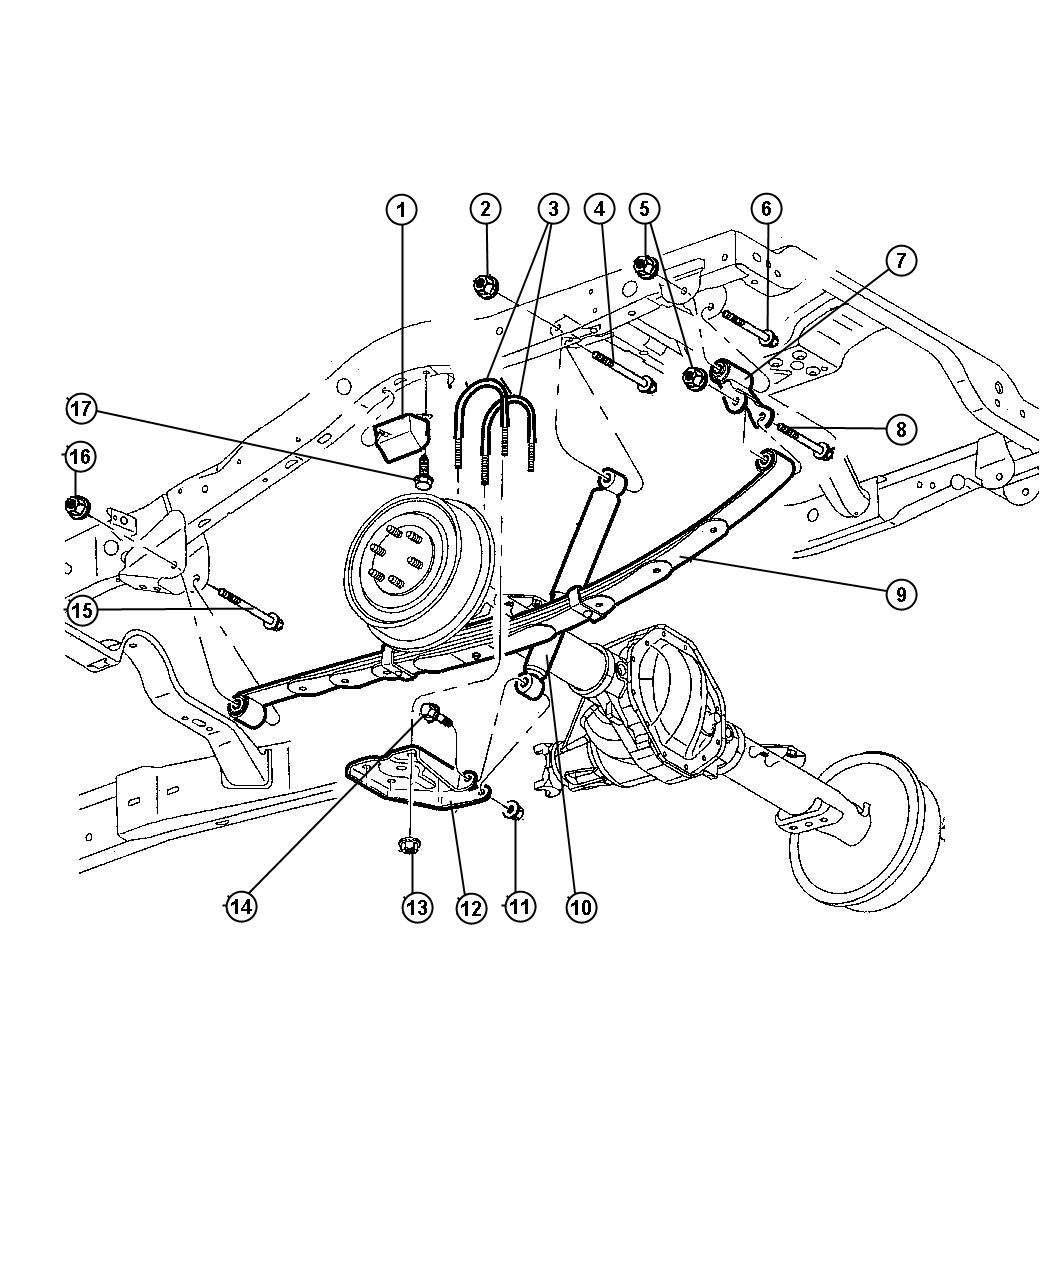 ShowAssembly besides 06508183AA further 2000 Dodge Durango Trailer Wiring Harness further 7t1dp Ram 1500 Changing Upper Lower Ball Joints in addition 0nsrn 2002 Dodge Dakota Front End Squeek Fix It. on 2001 dodge durango upper control arm